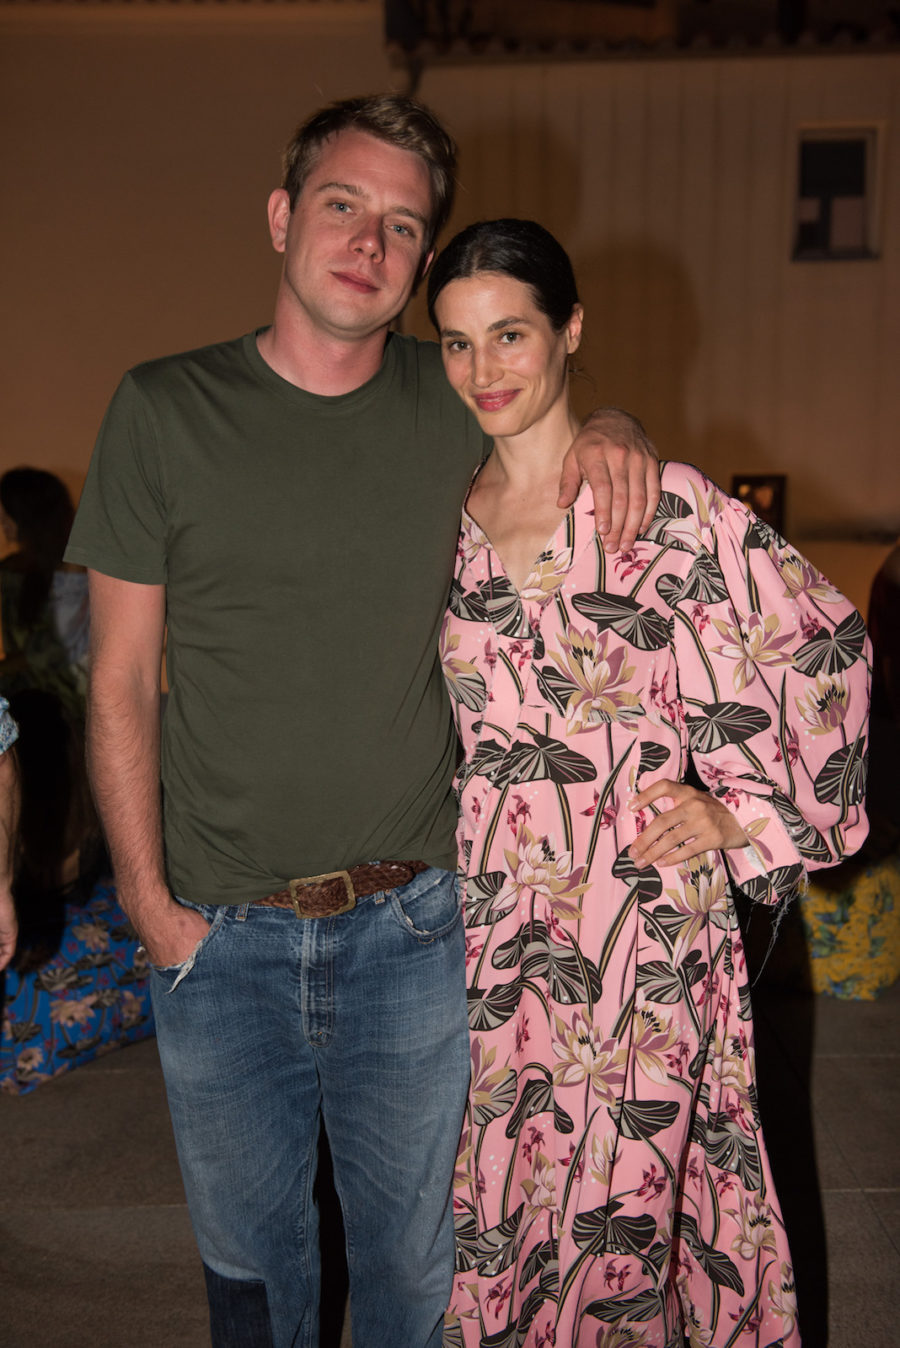 Guests at Loewe's Event in Ibiza